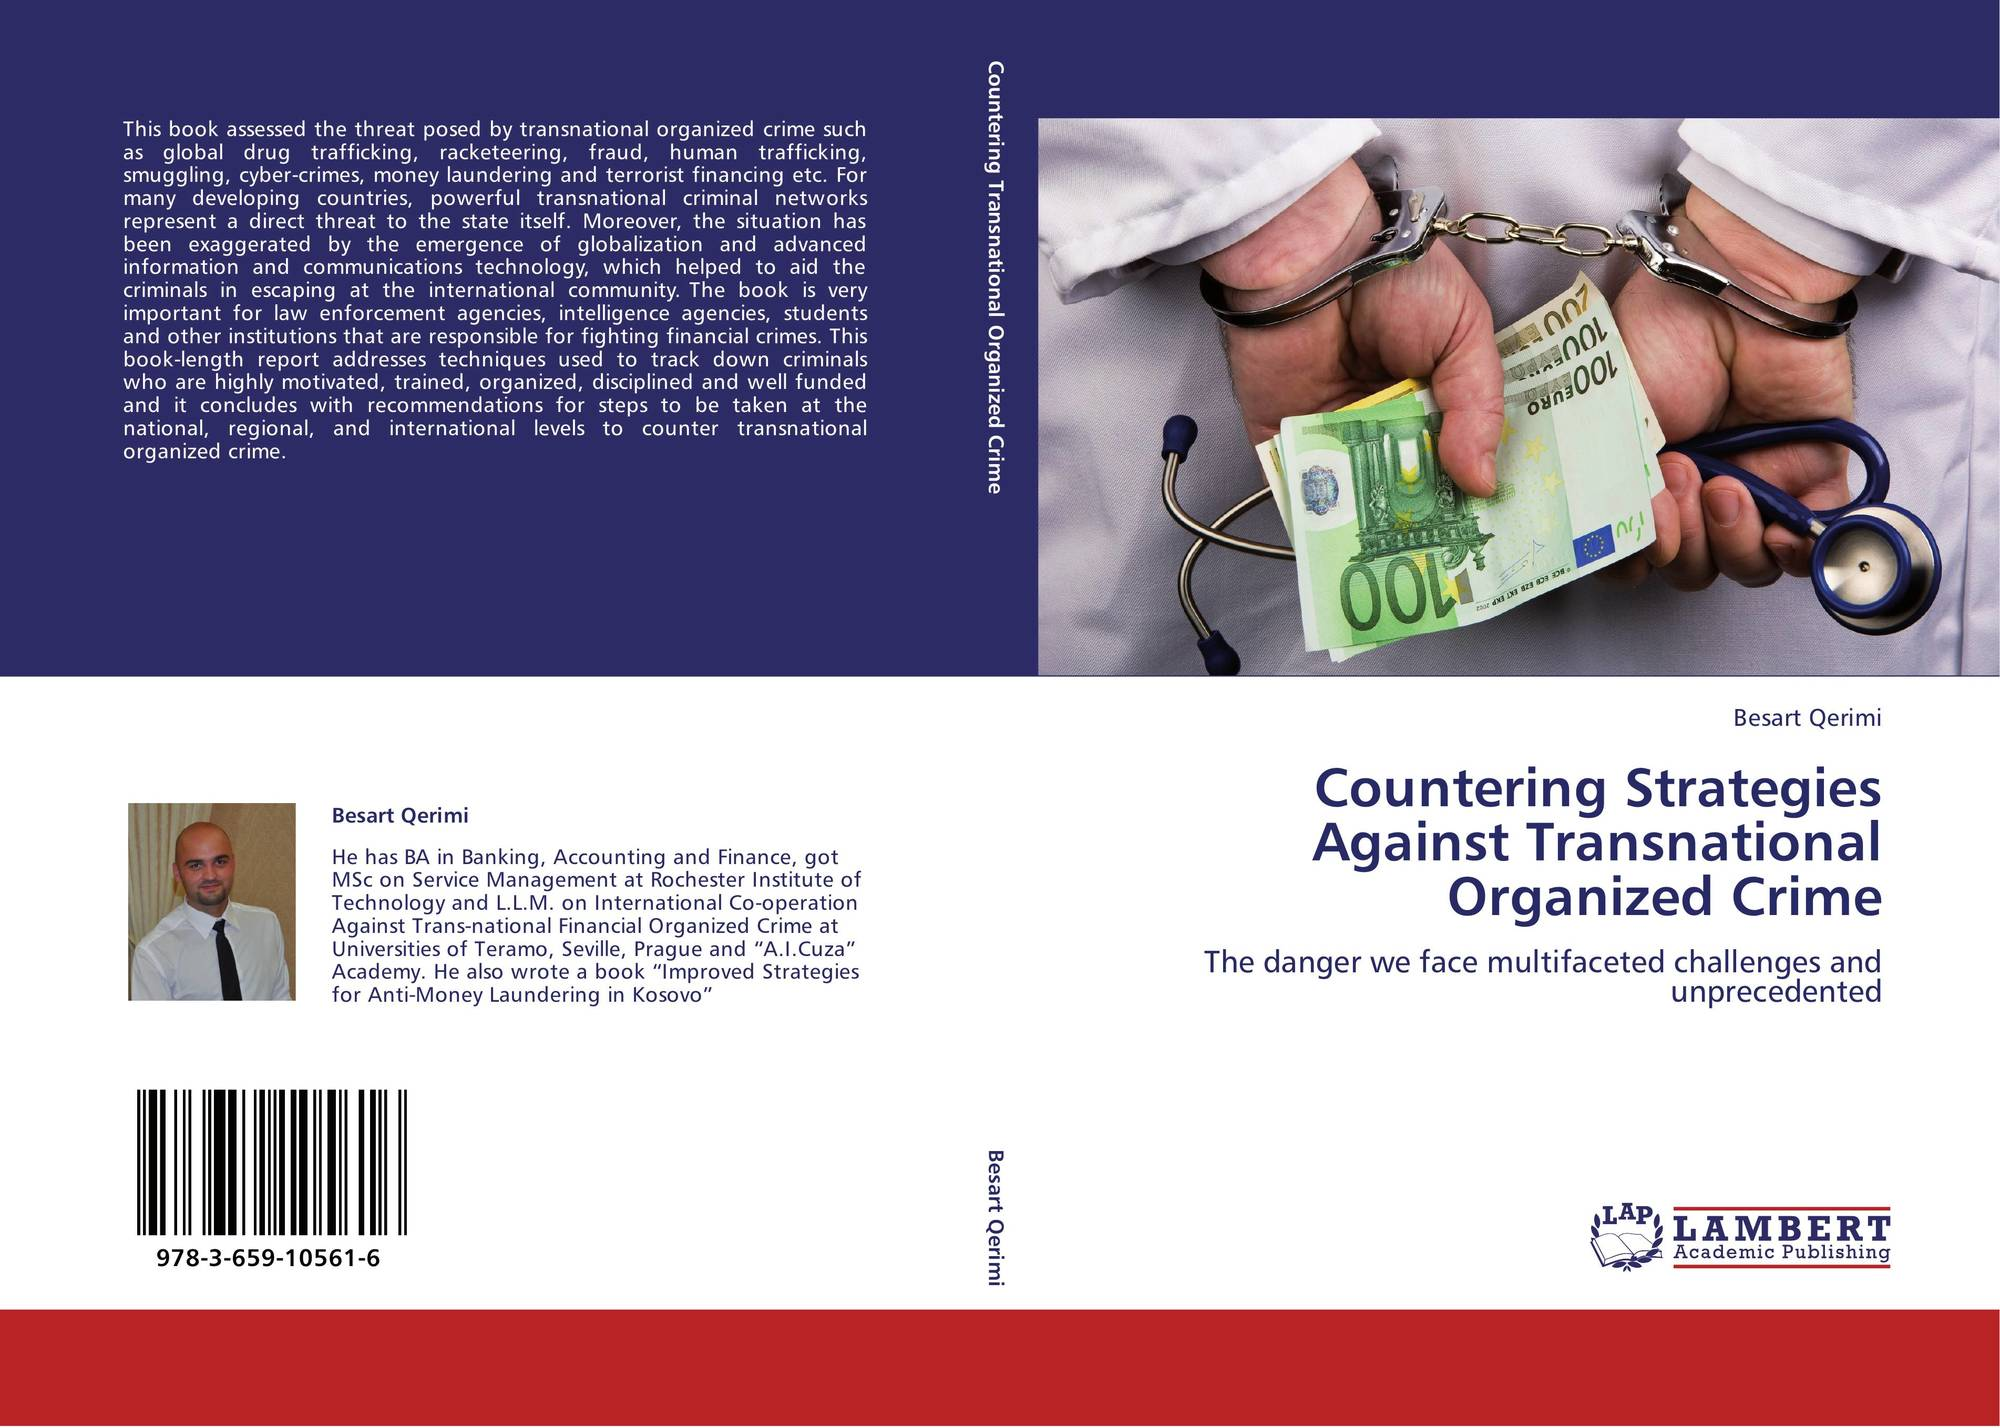 Countering Strategies Against Transnational Organized Crime